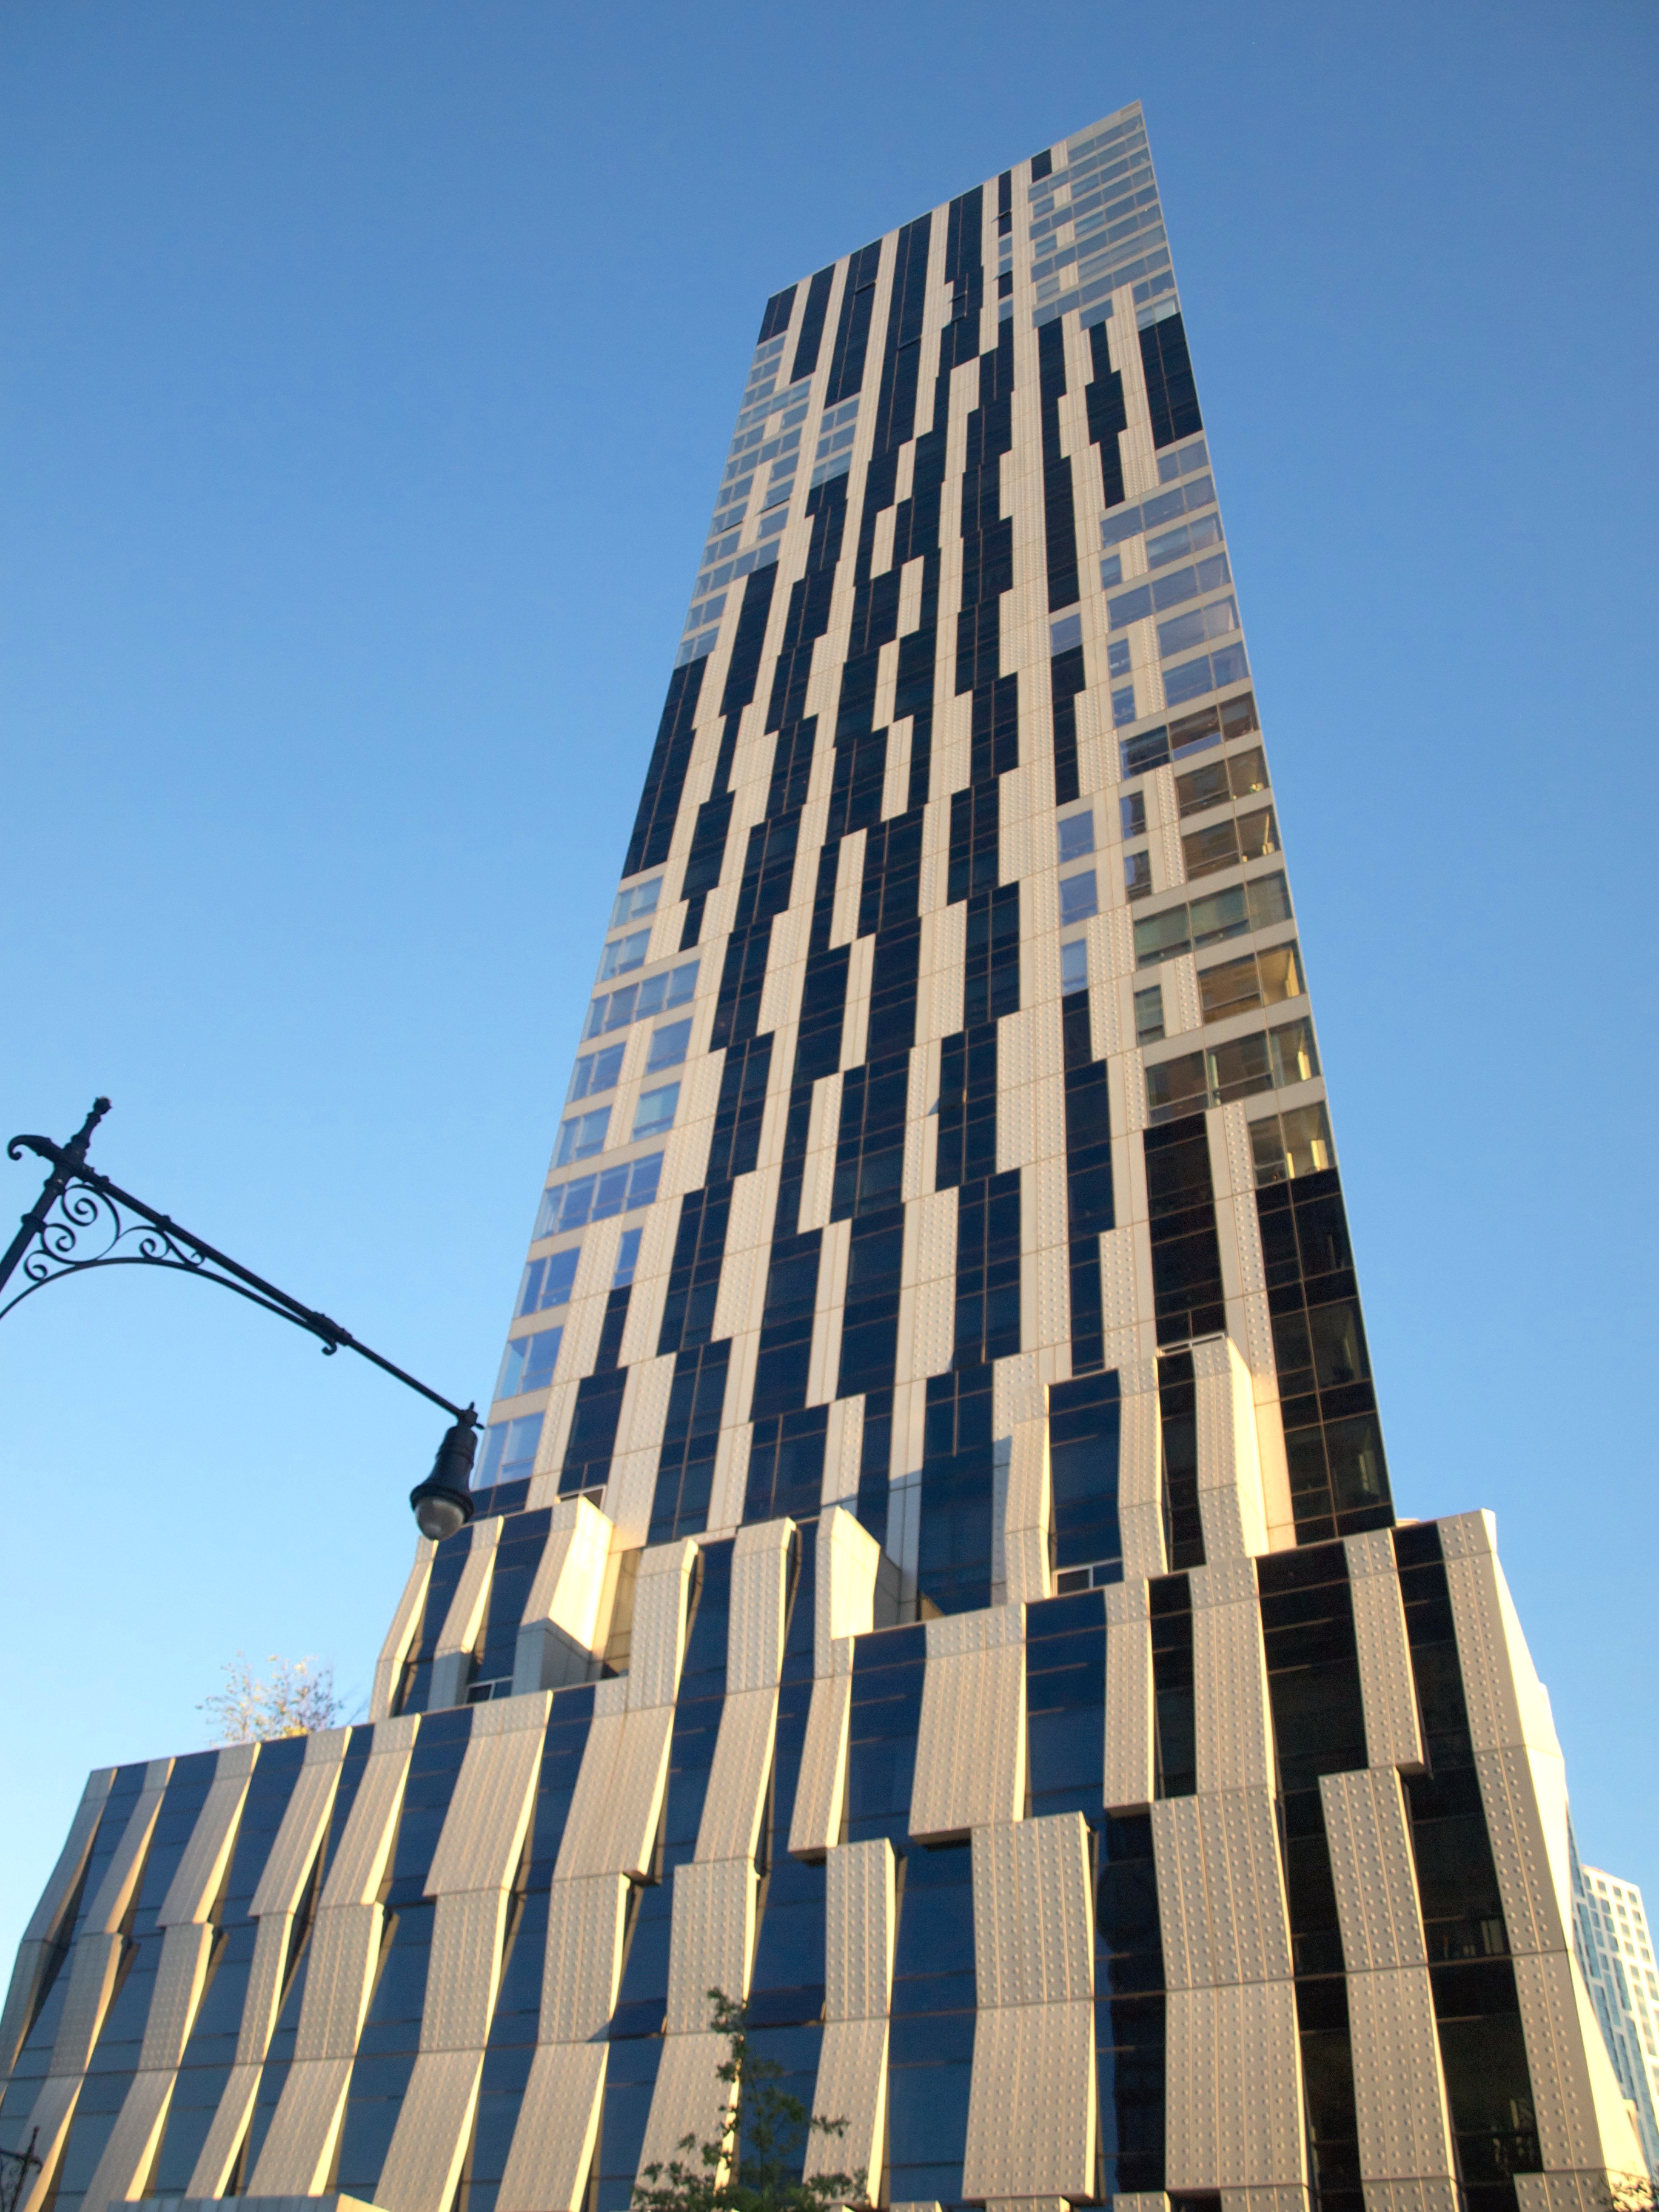 Toren Condominium in Brooklyn, New York City, New York. Up close, the rain screen becomes more apparent, as the face of the building is not perfectly flat.